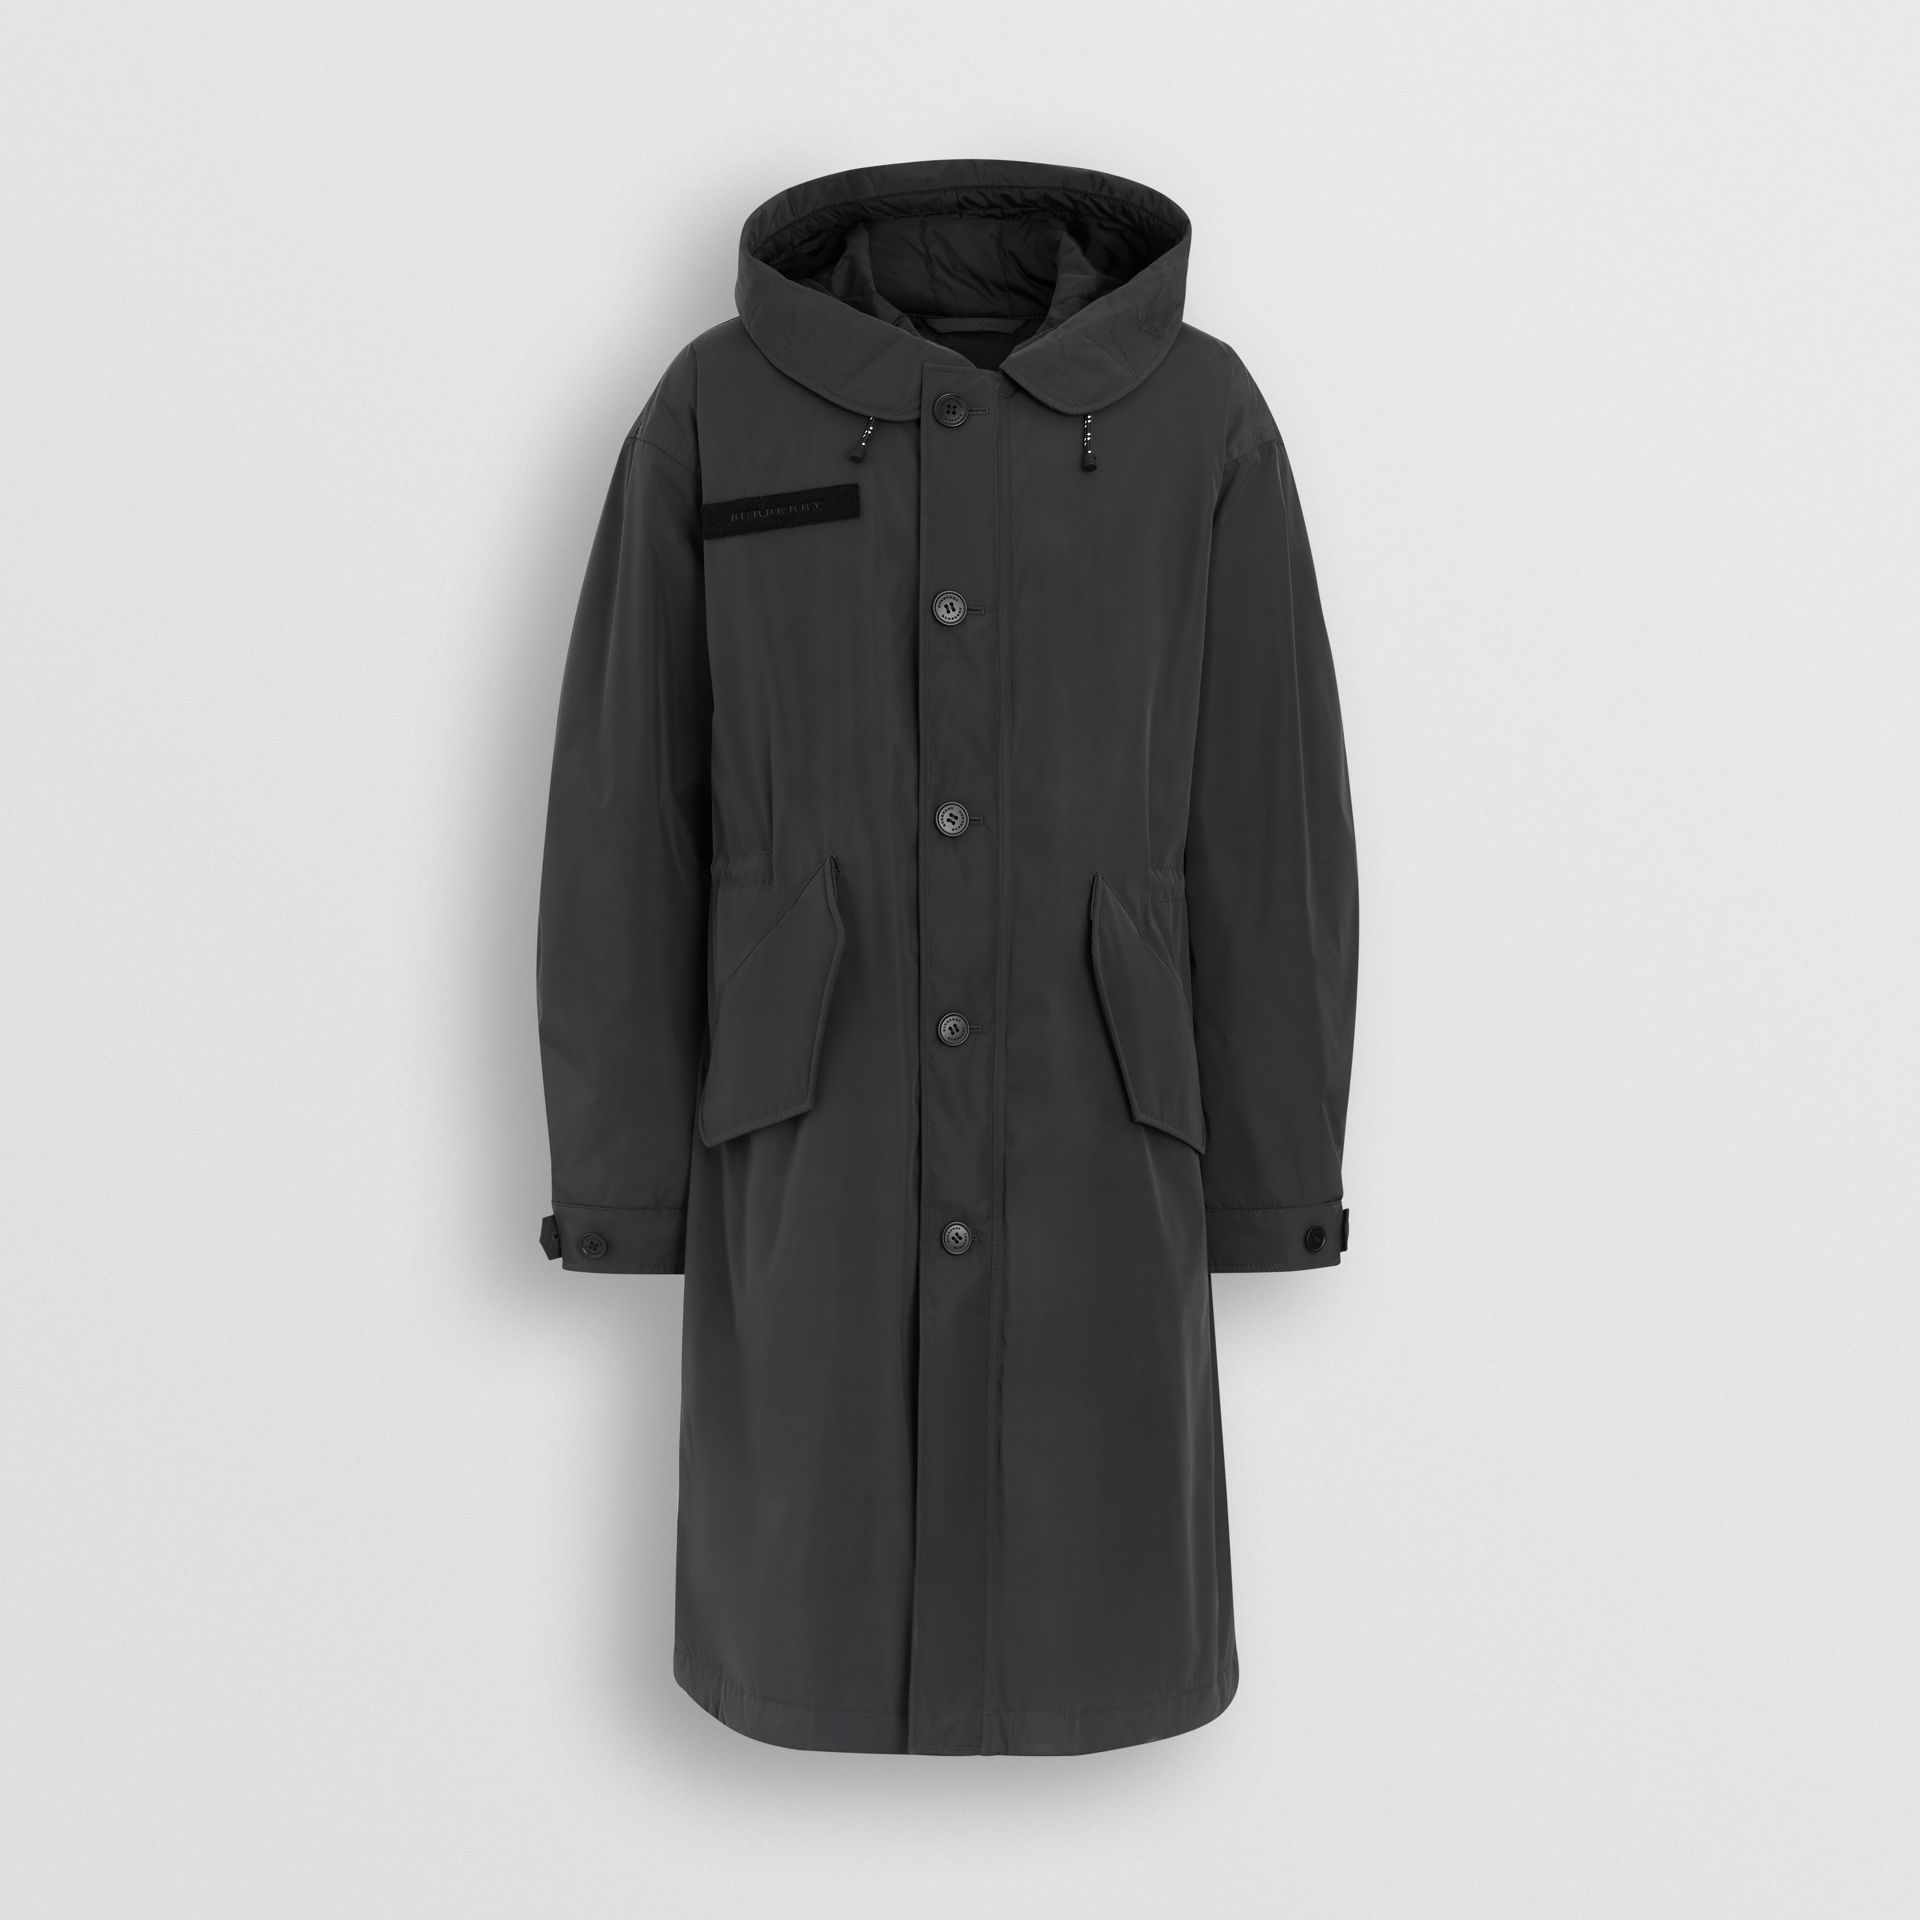 Quilt-lined Technical Nylon Parka in Dark Charcoal - Men | Burberry Australia - gallery image 3